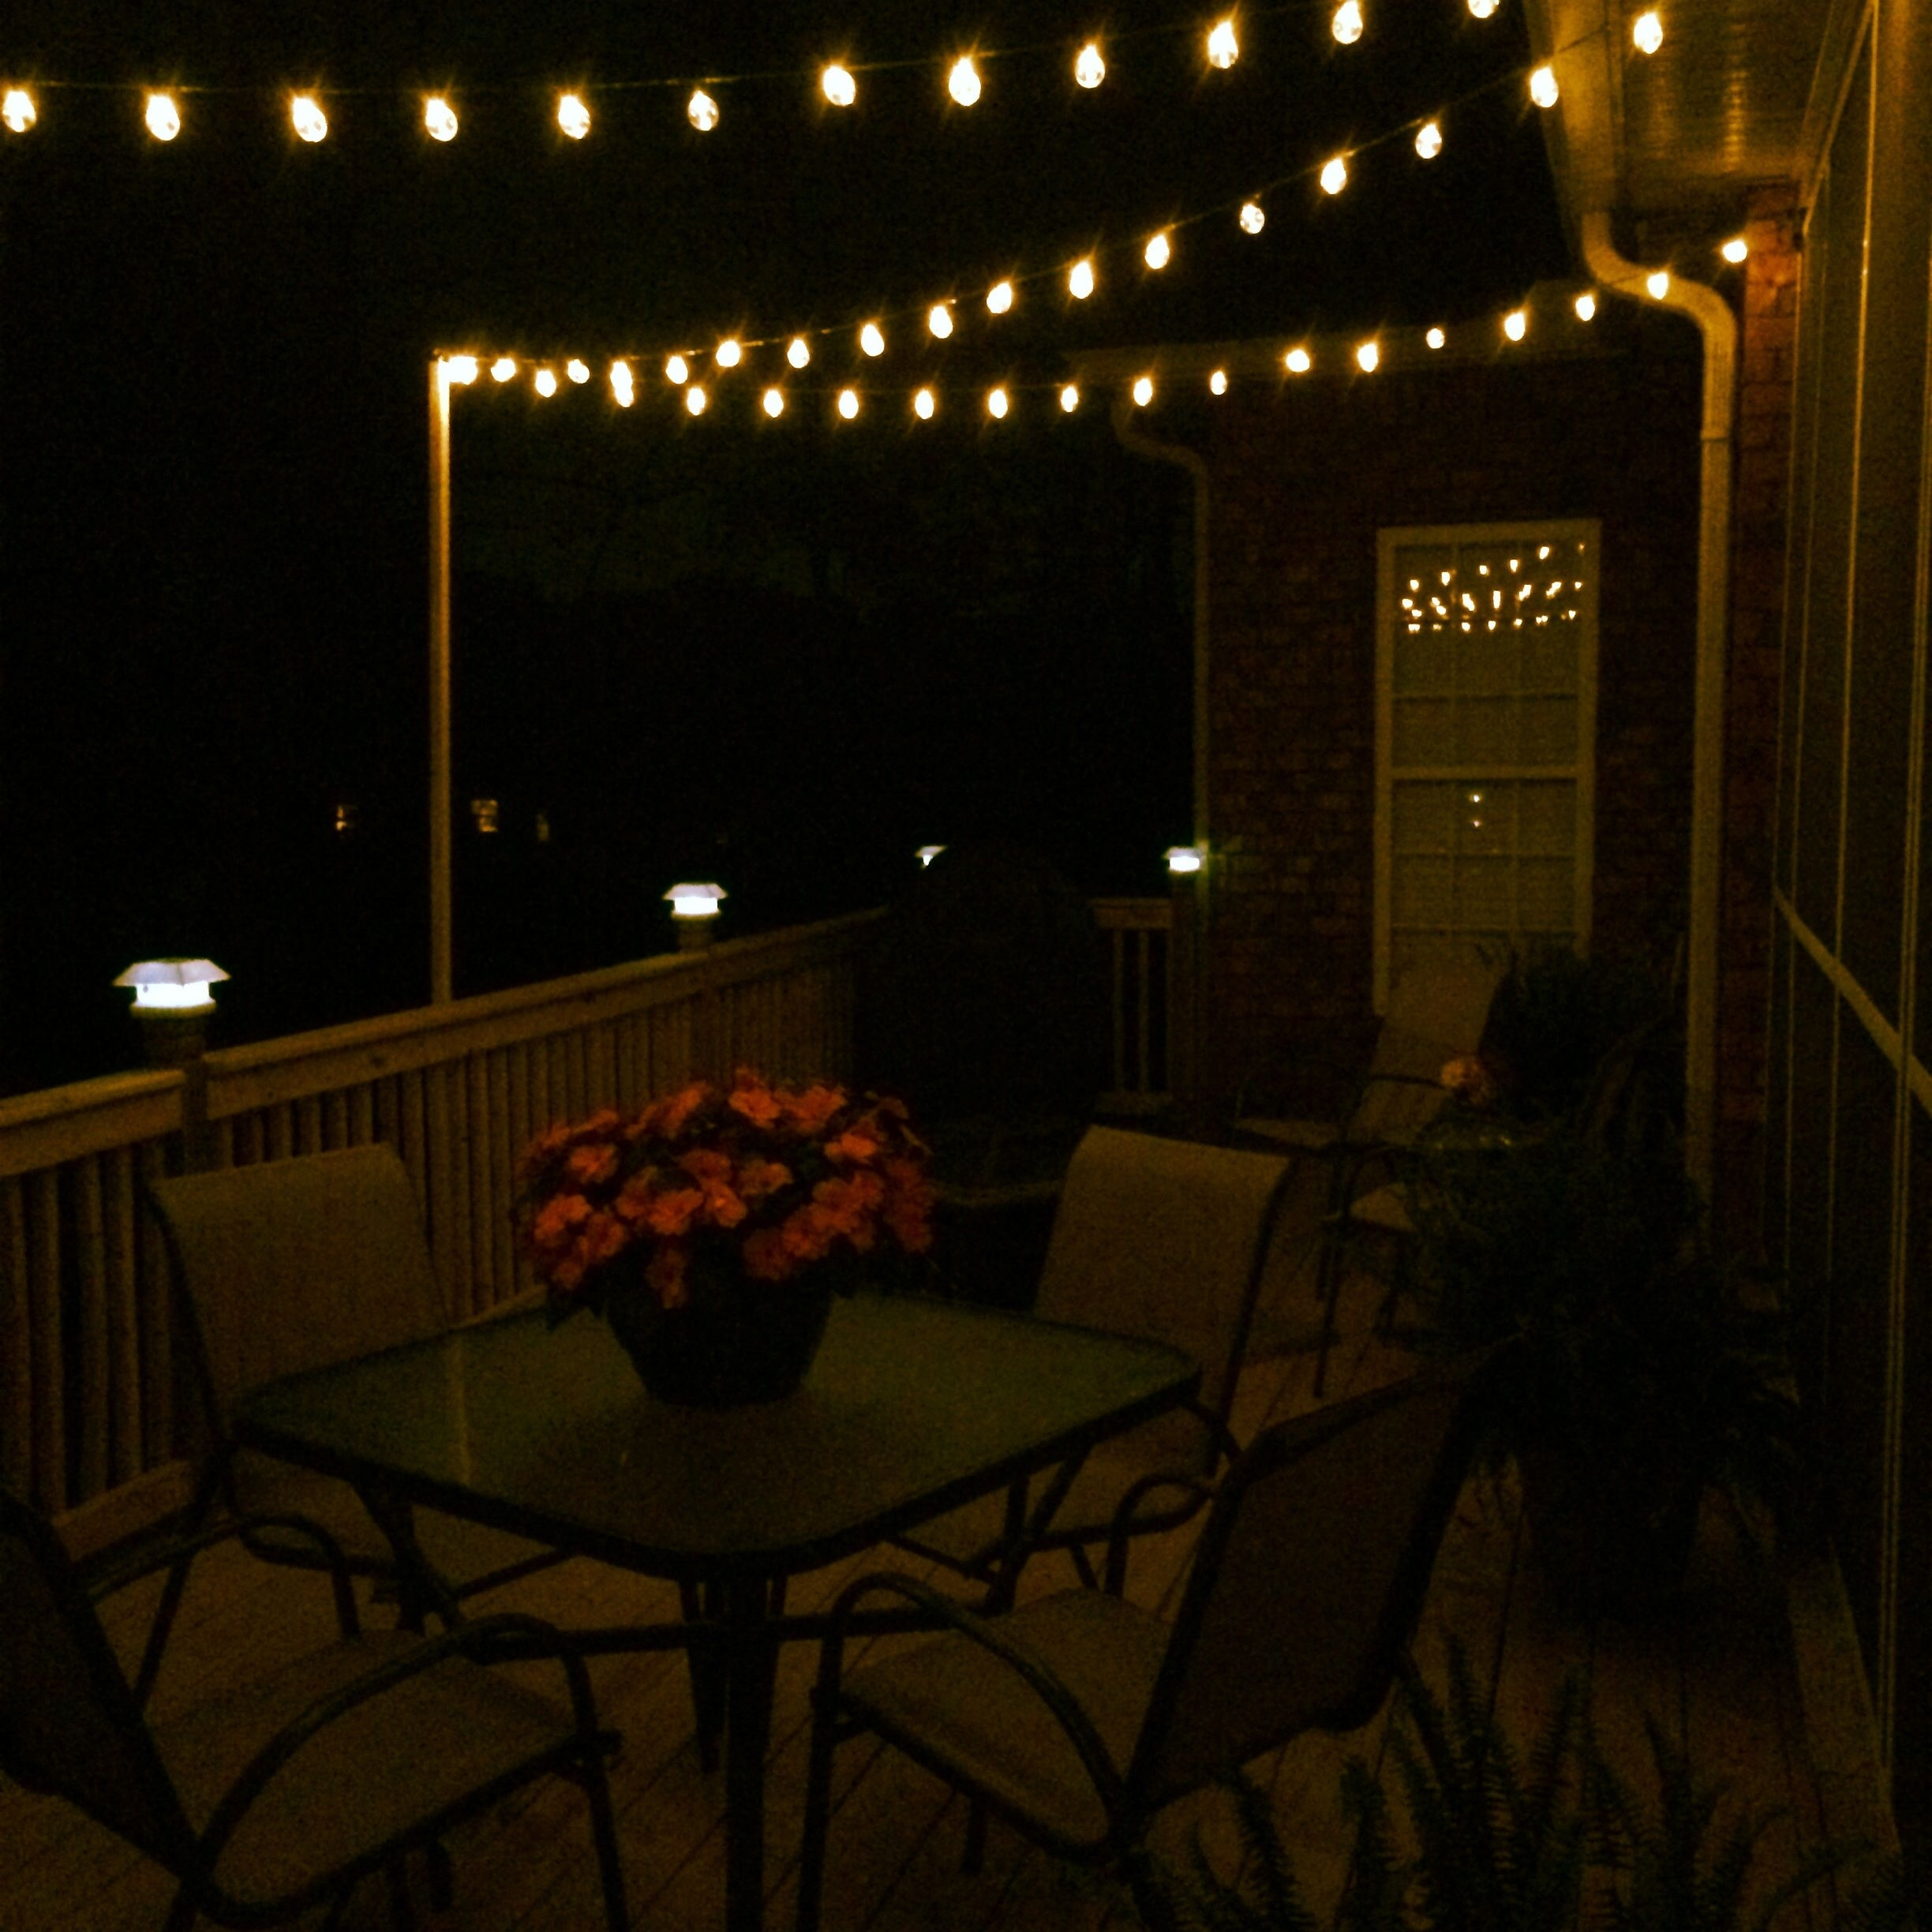 Diy Deck Lighting Using Wooden Poles And S-Hooks | Porch And Deck throughout Outdoor Deck Lanterns (Image 6 of 20)